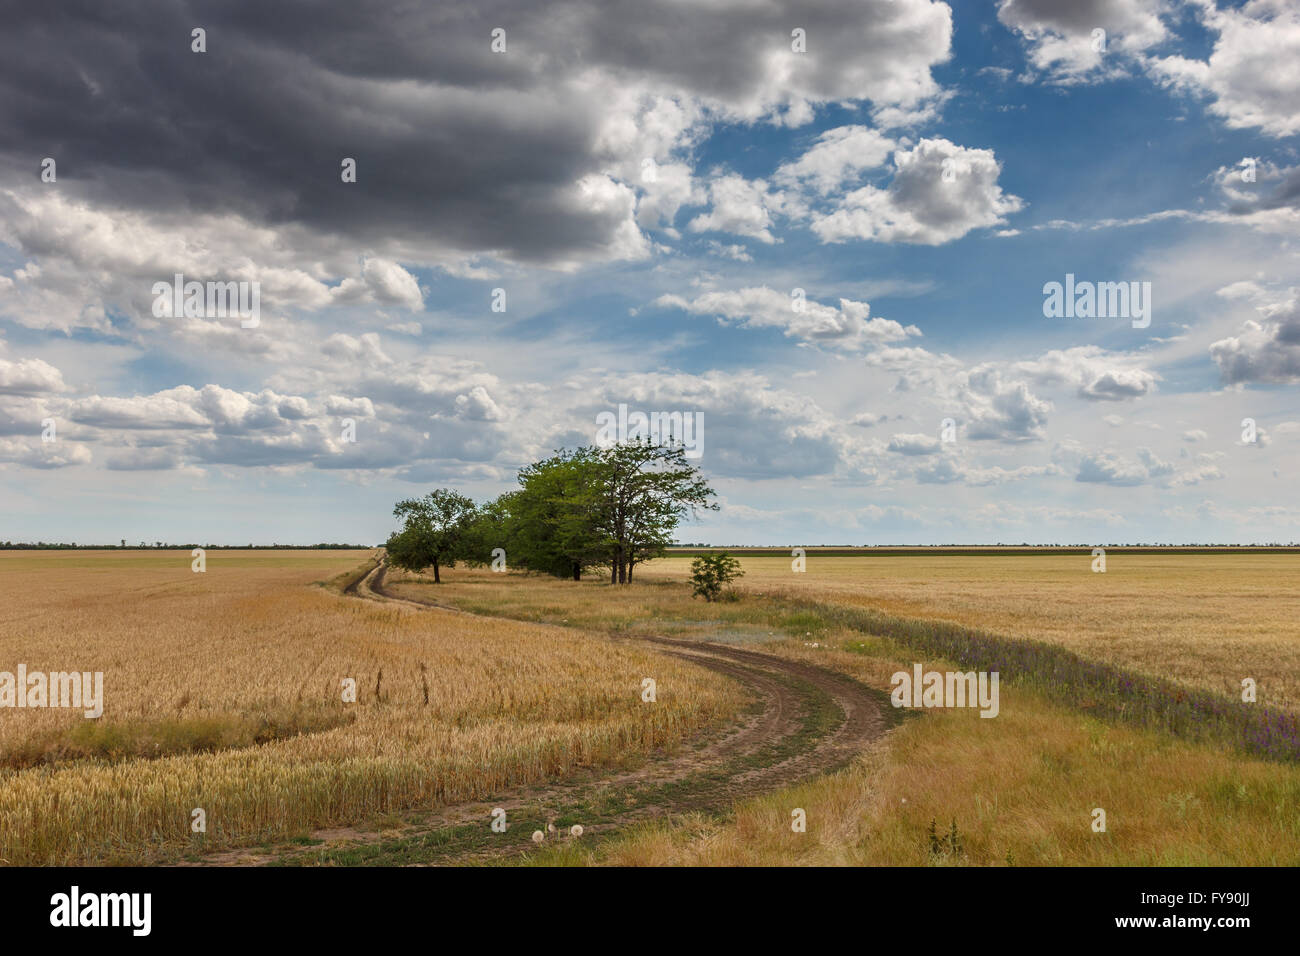 Country road among wheat fields near the village - Stock Image